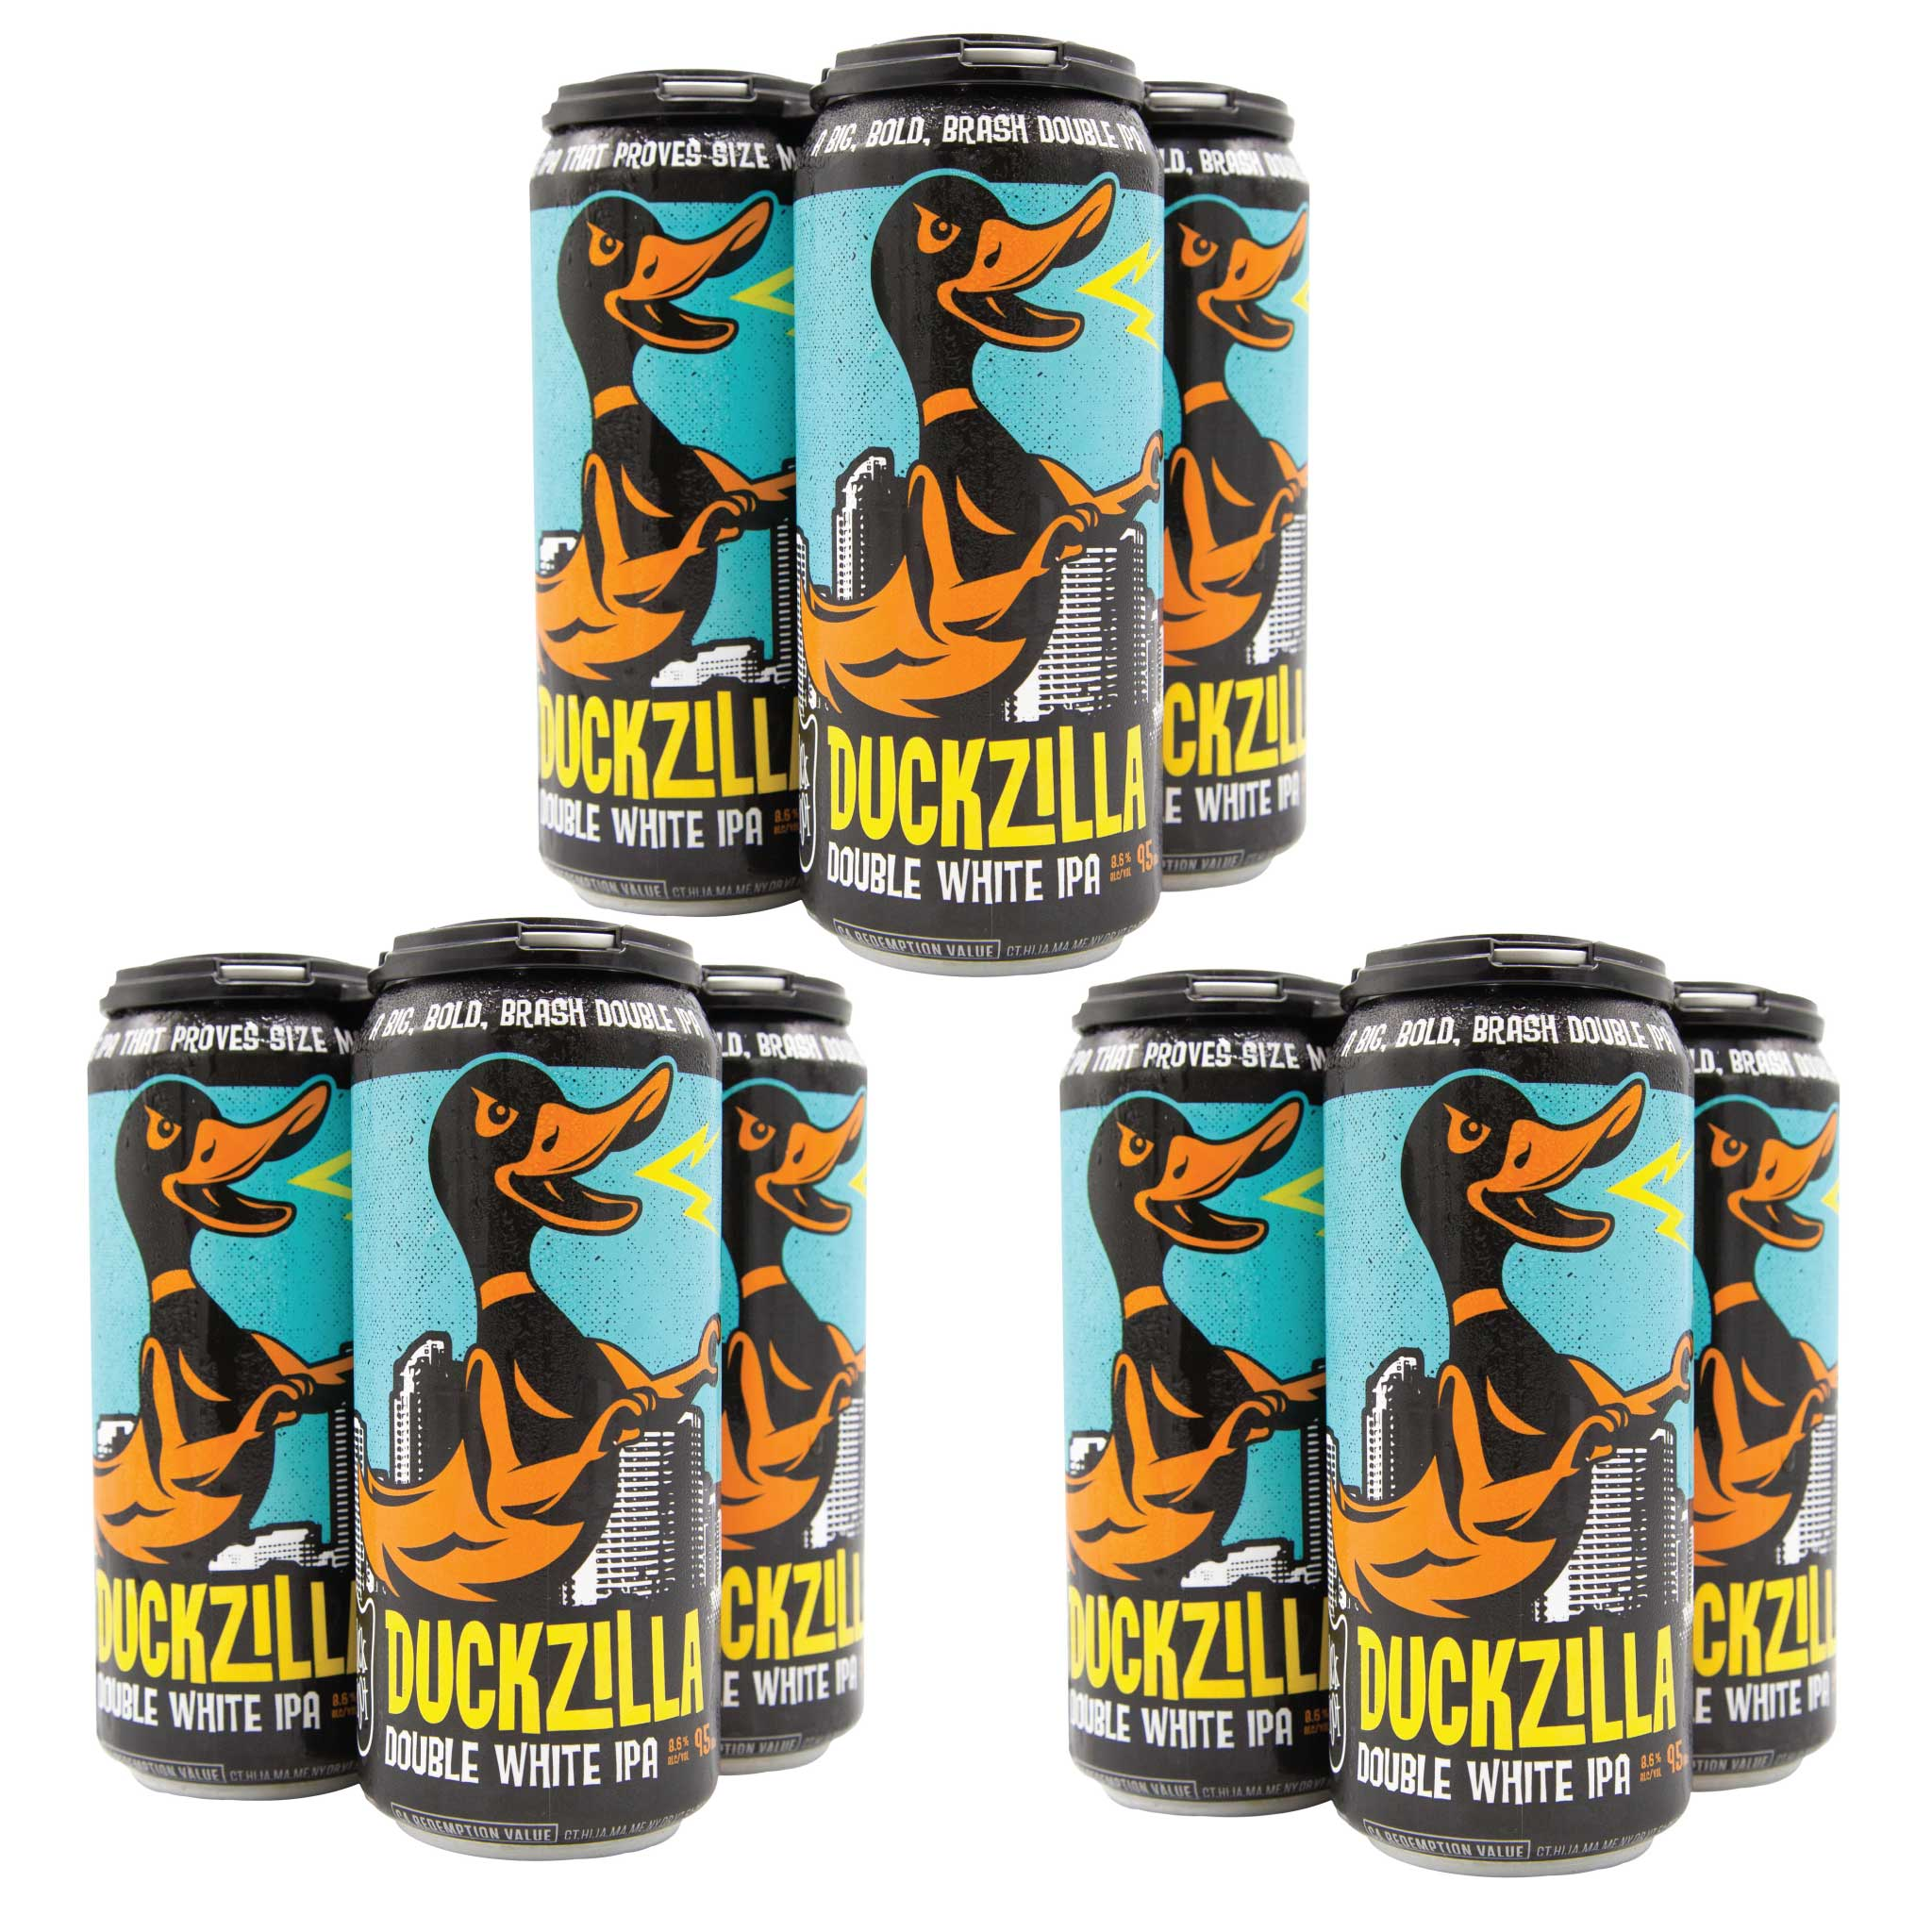 Duckzilla (3 x 4 Pack of 16oz Cans) ** CA SHIPPING ONLY